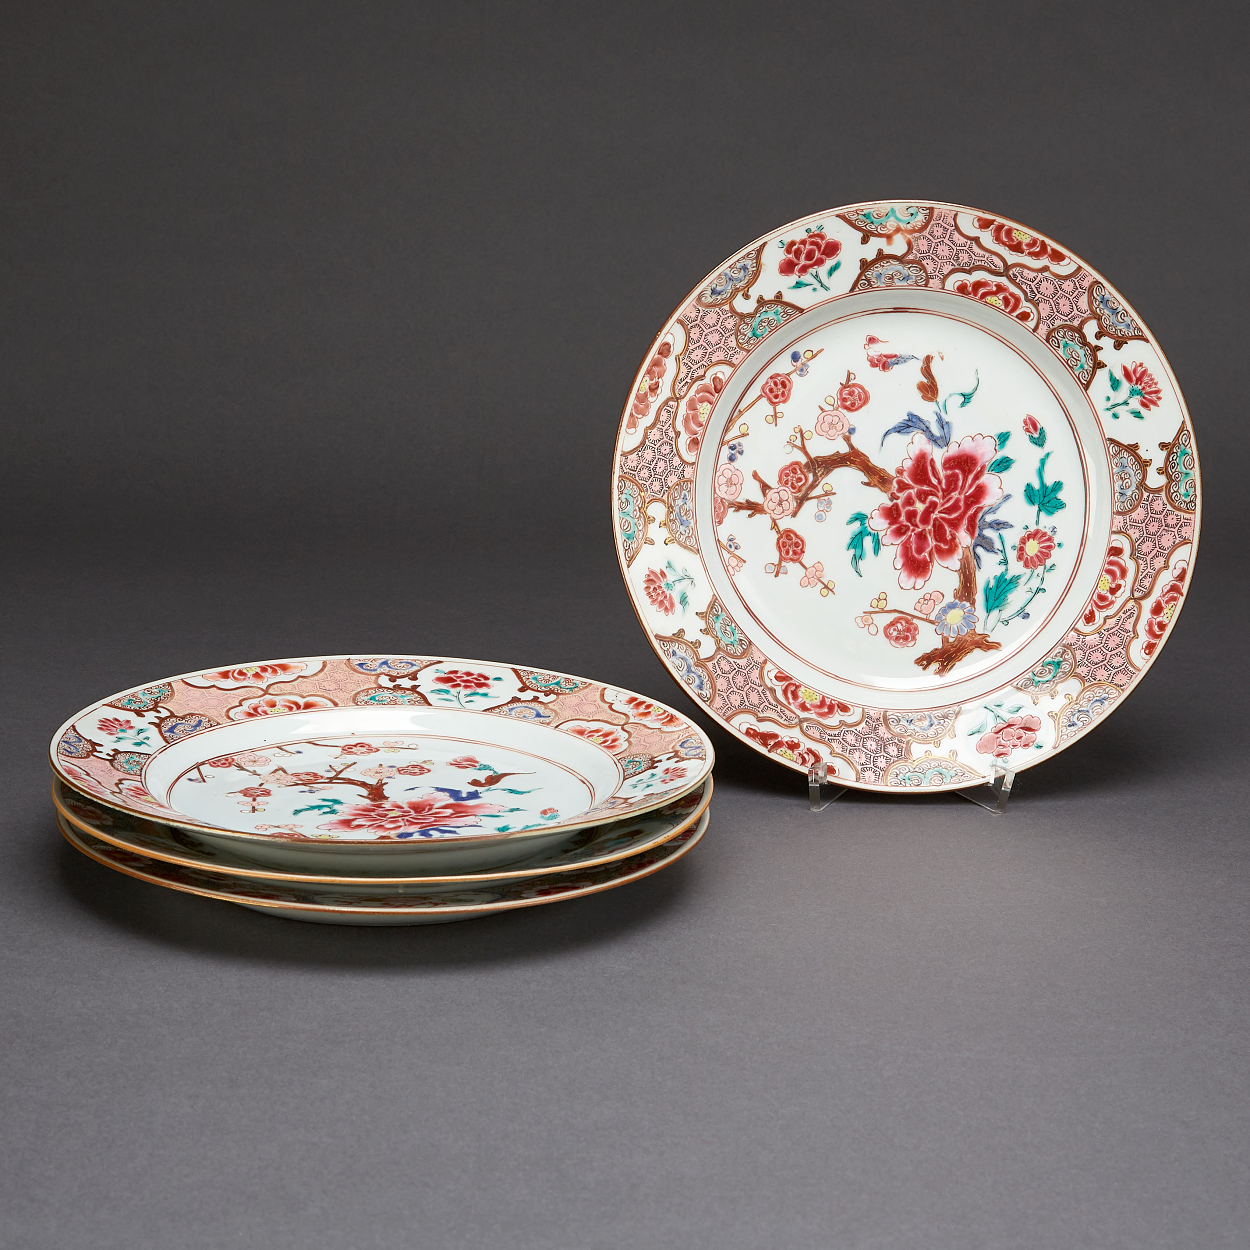 A Set of Four Famille Rose Plates